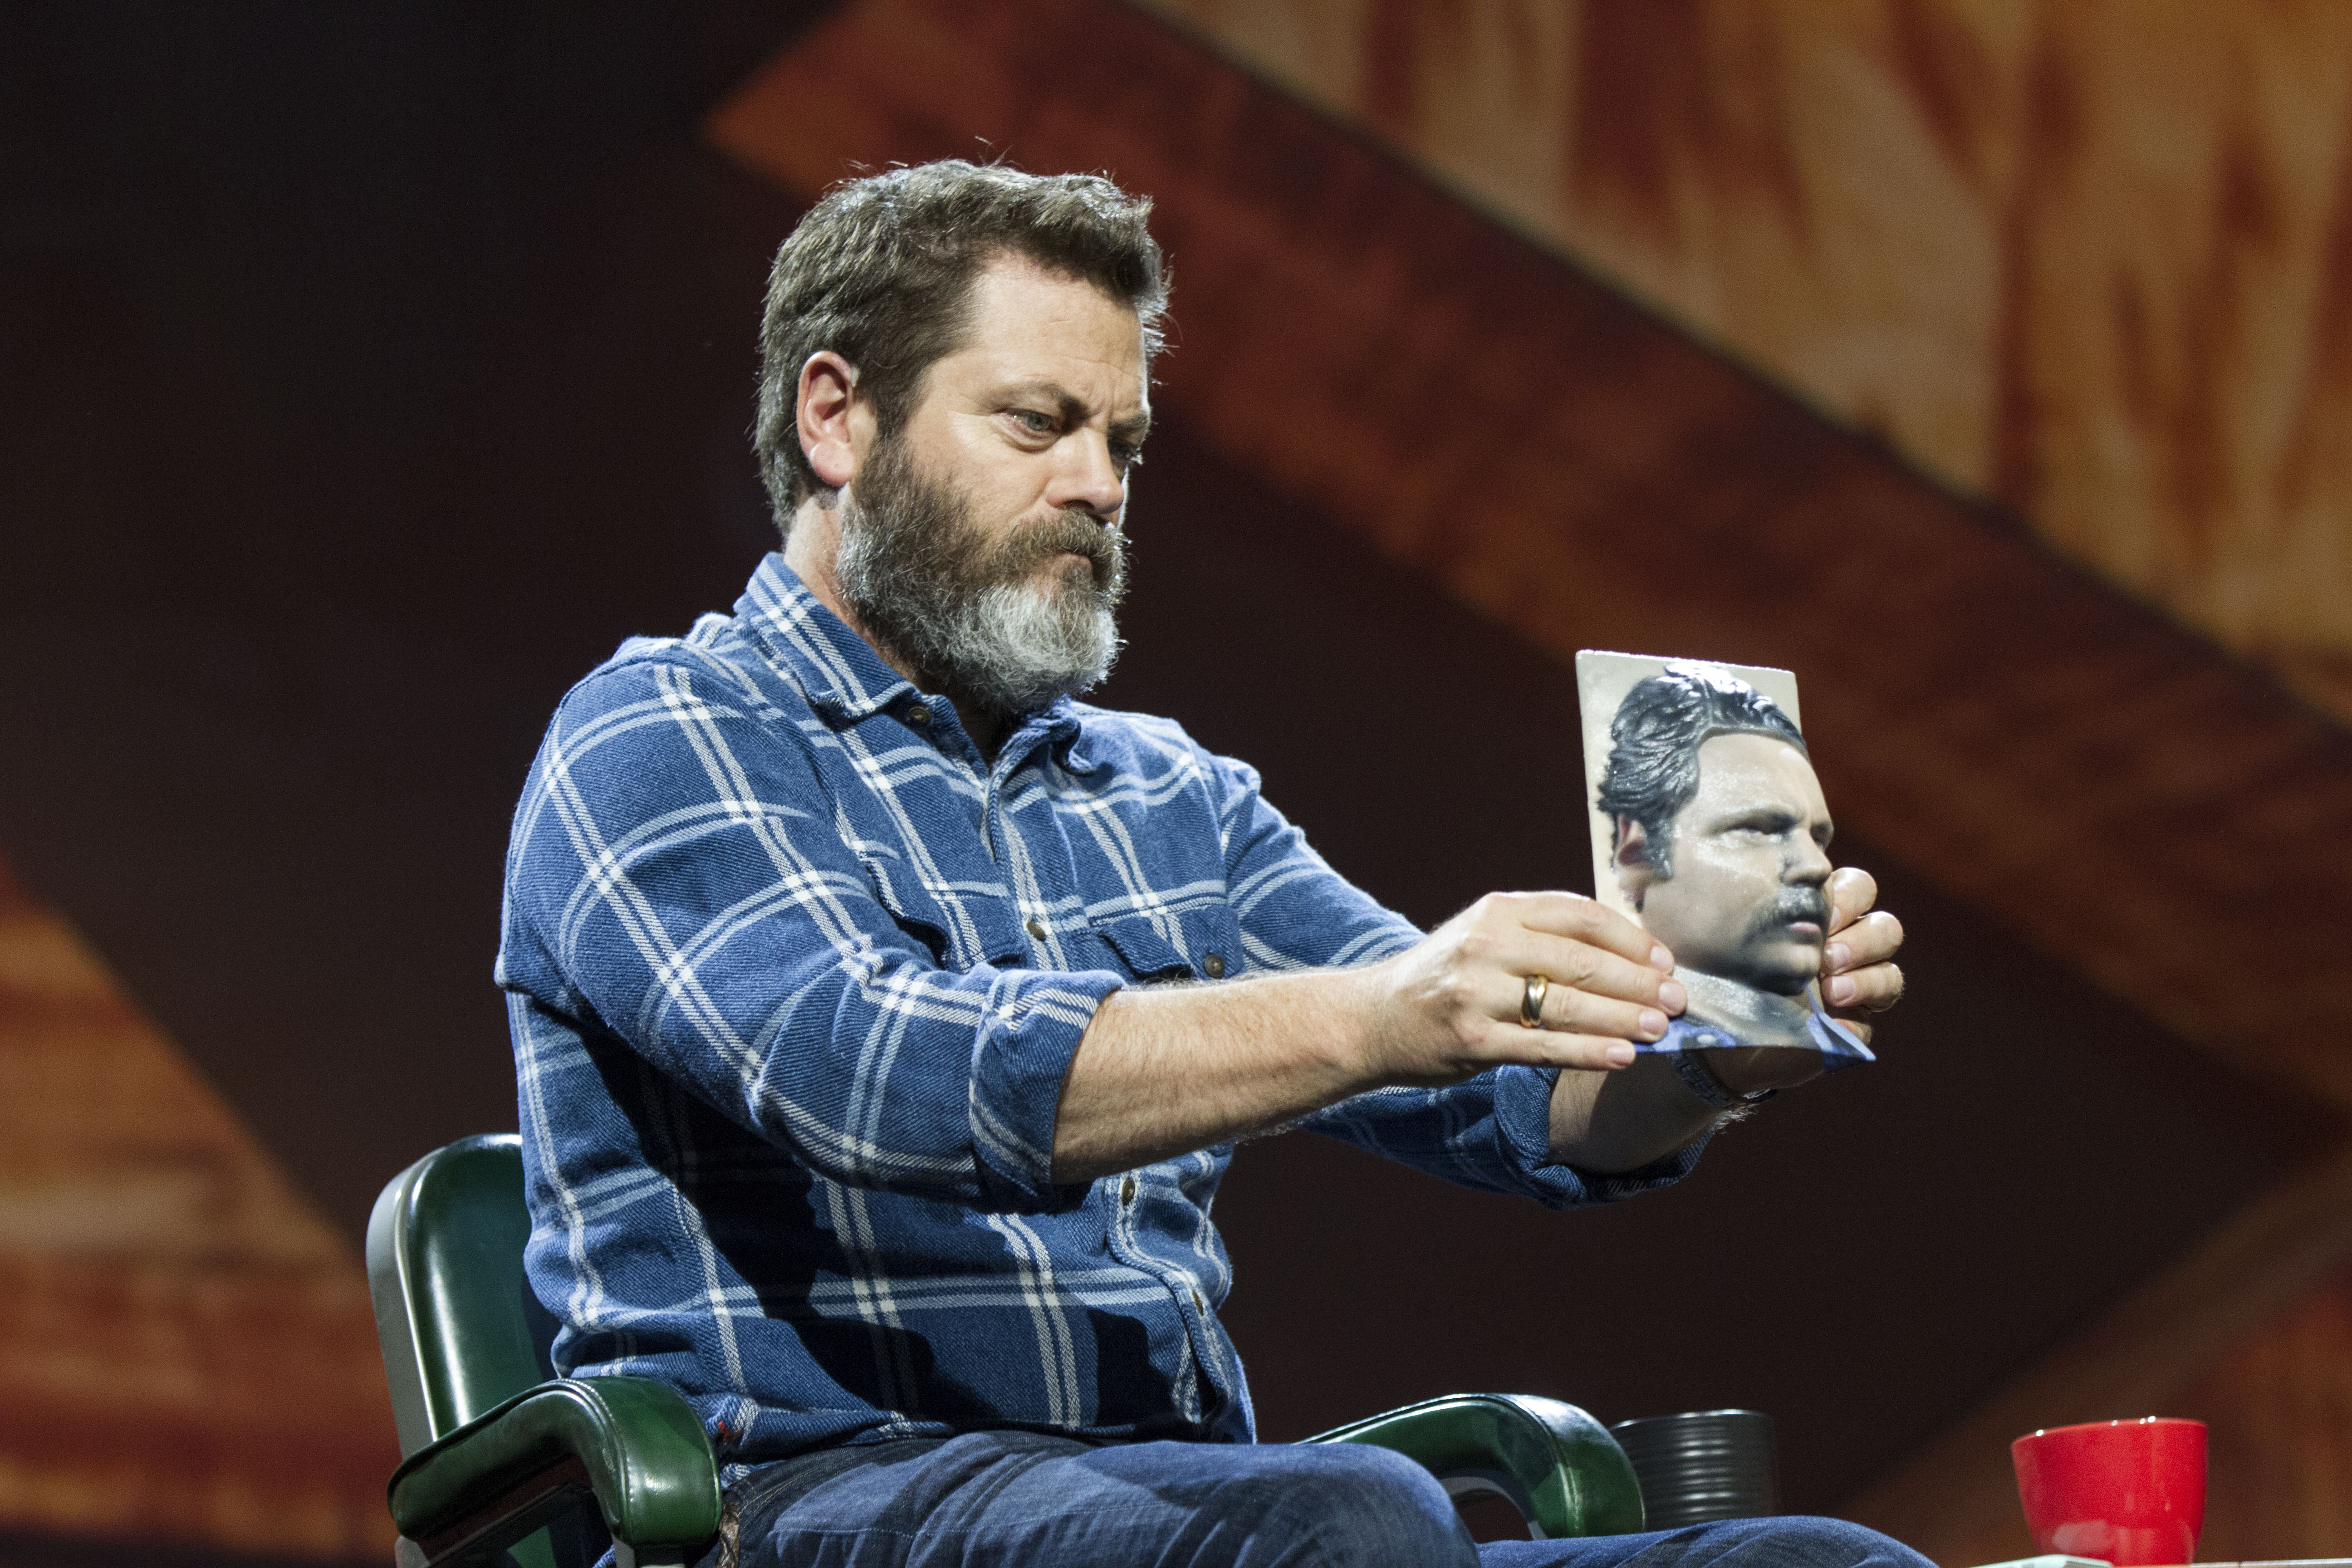 At Adobe's Max conference, Parks and Recreation actor Nick Offerman holds a 3D-printed model of his head reconstructed from a photo.